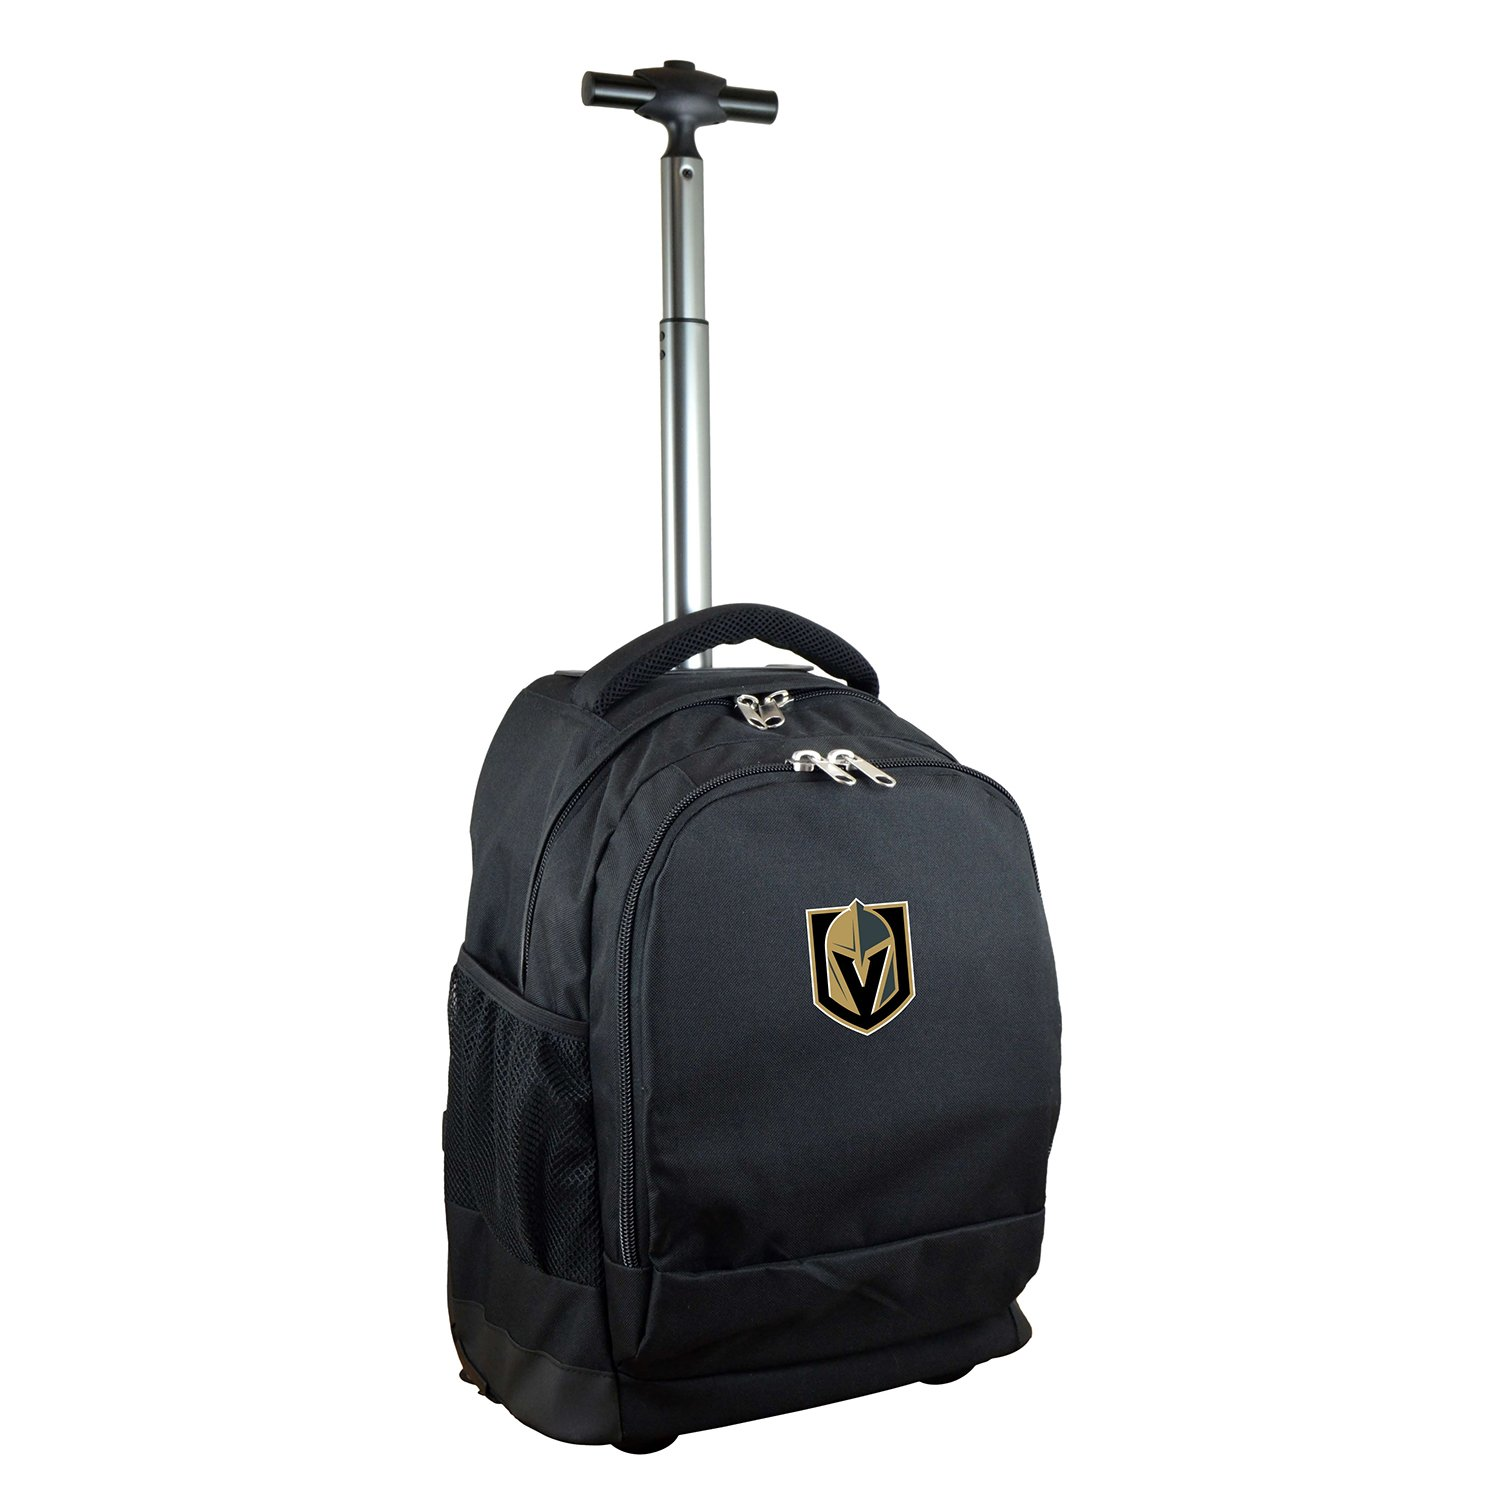 NHL Expedition Wheeledバックパック、19-inches、ブラック B075KZ8G83  Vegas Golden Knights